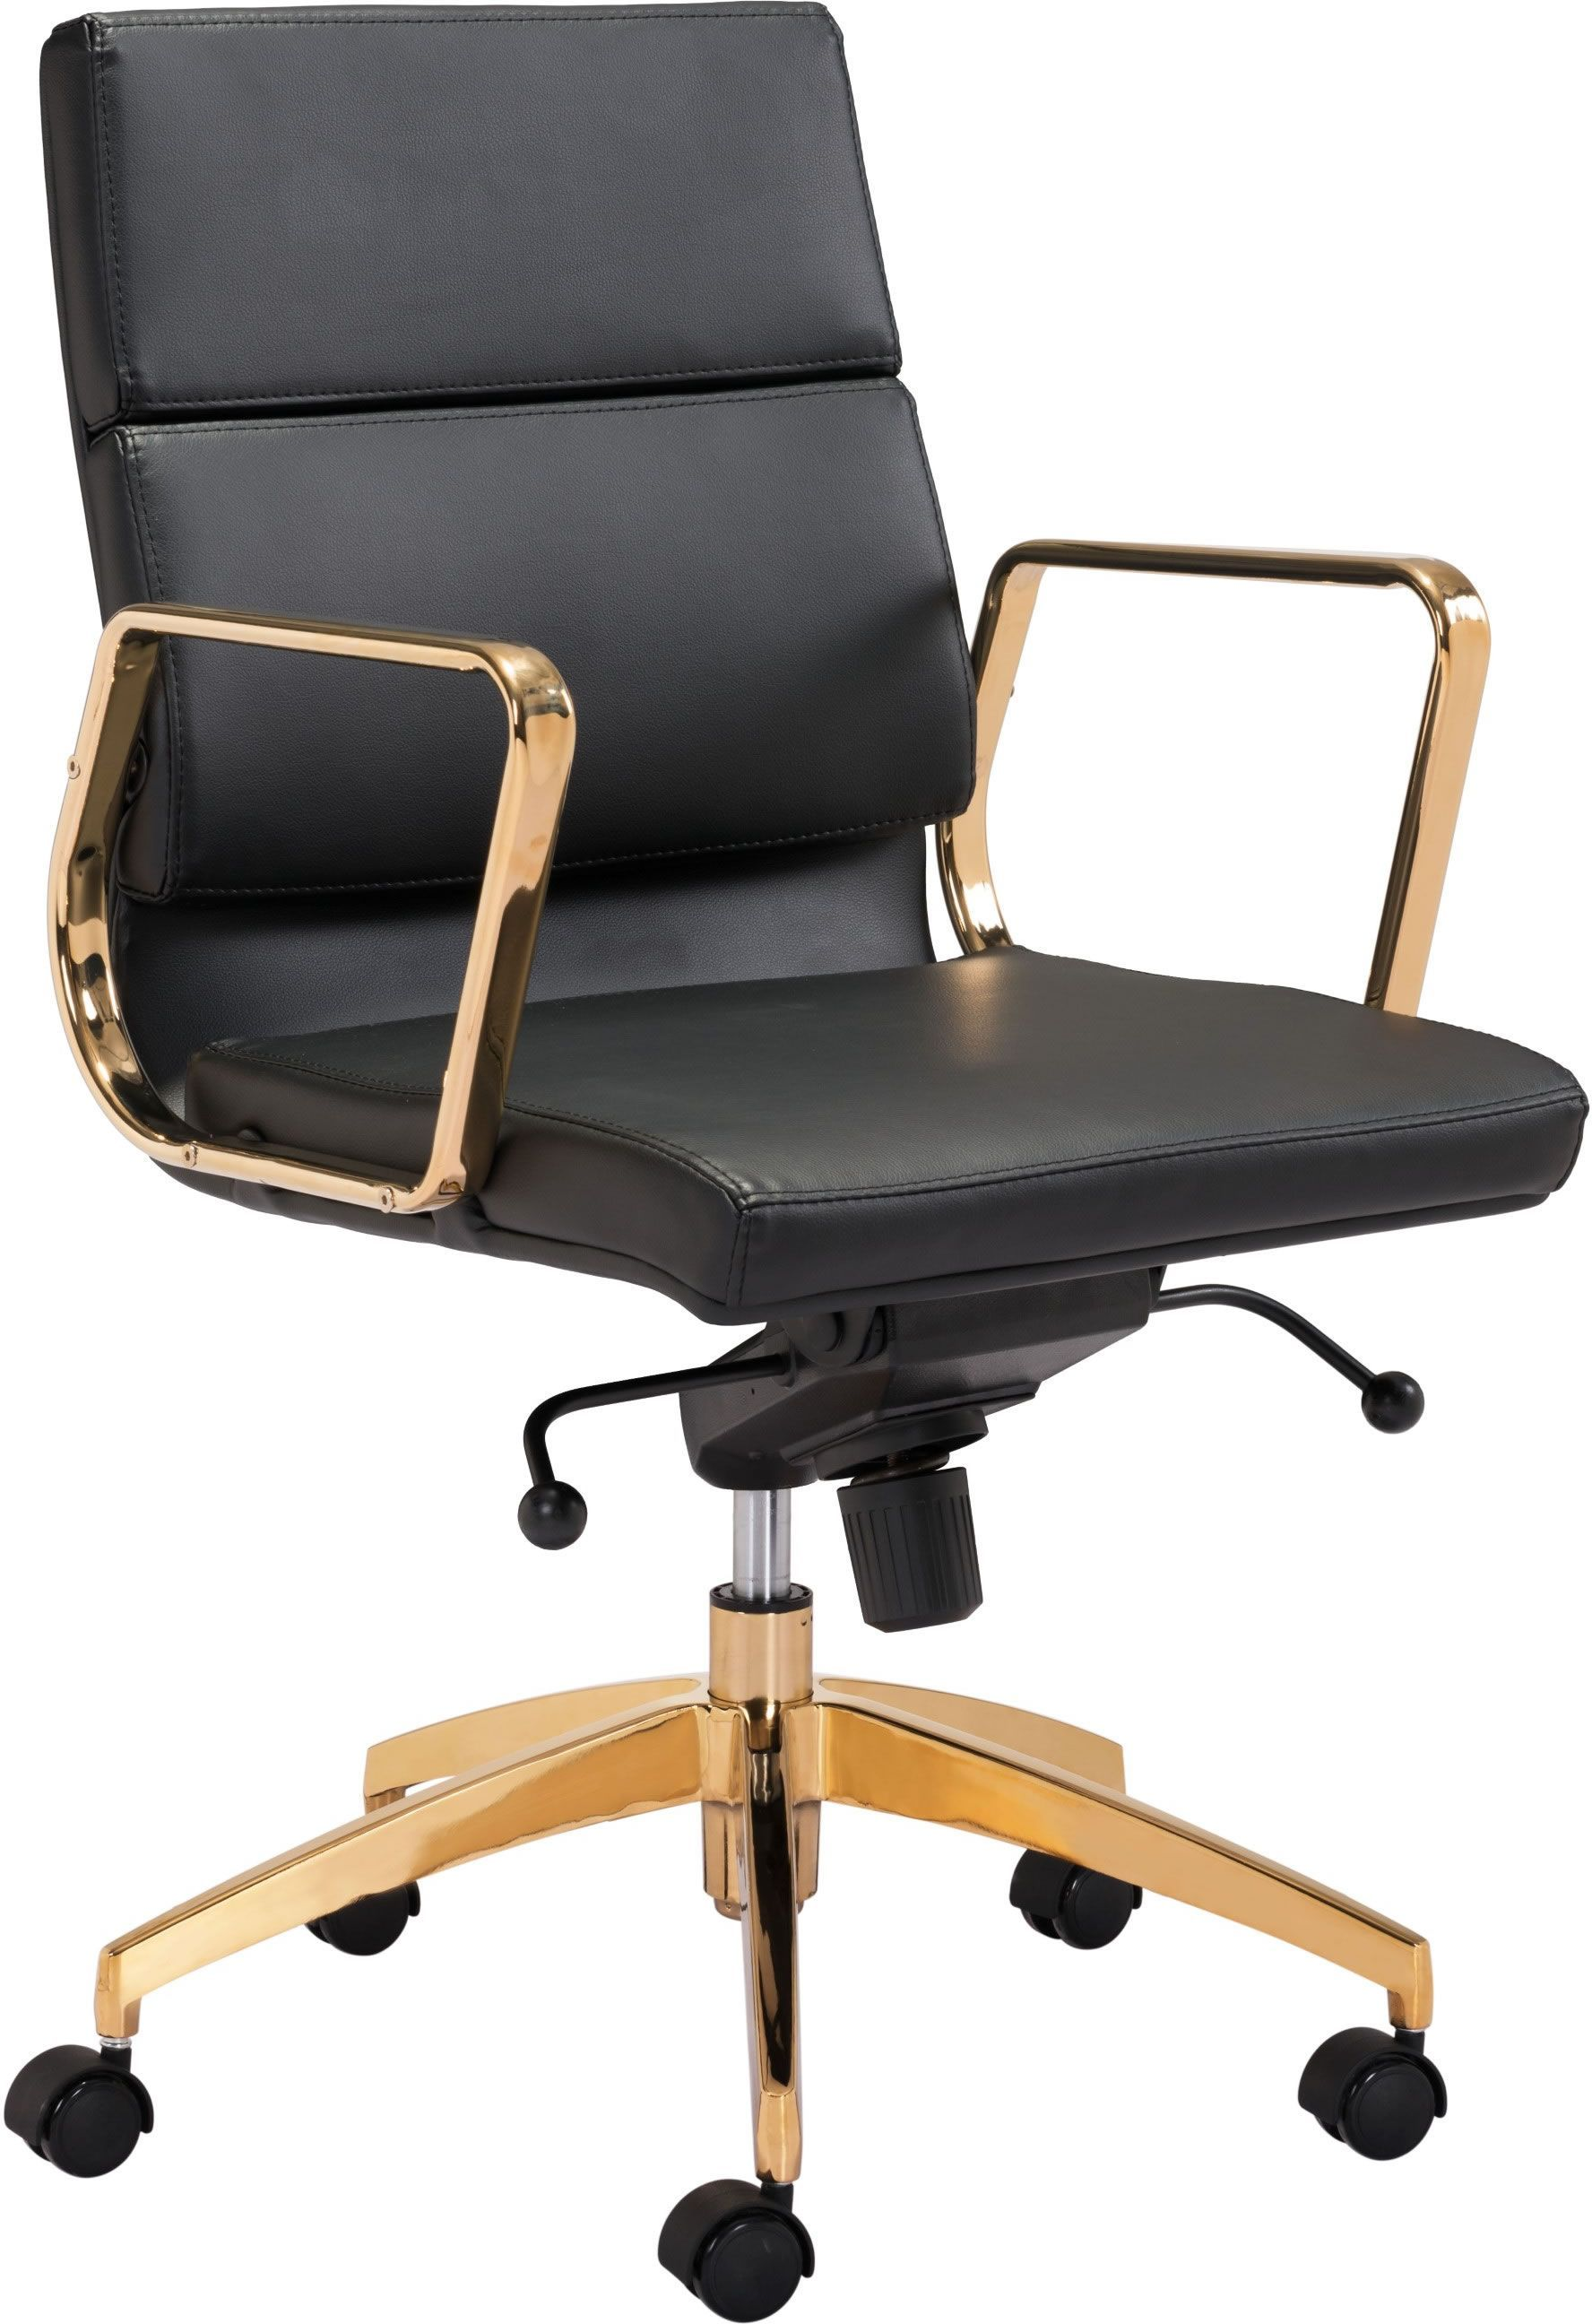 Low Back Office Chair Scientist Low Back Office Chair Black Gold